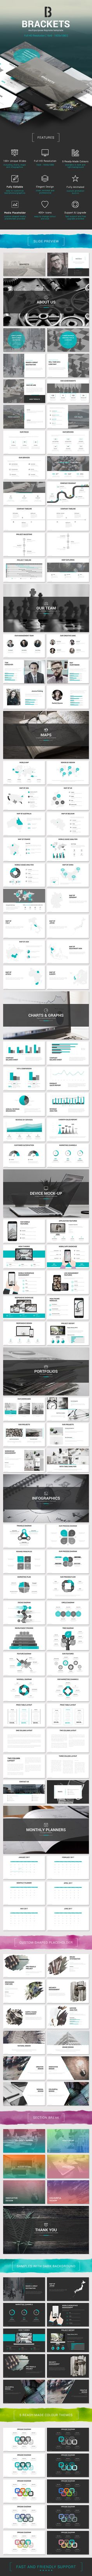 Brackets – multipurpose Keynote template — Keynote KEY #creative #marketing strategy • Download ➝ https://graphicriver.net/item/brackets-multipurpose-keynote-template/19491781?ref=pxcr